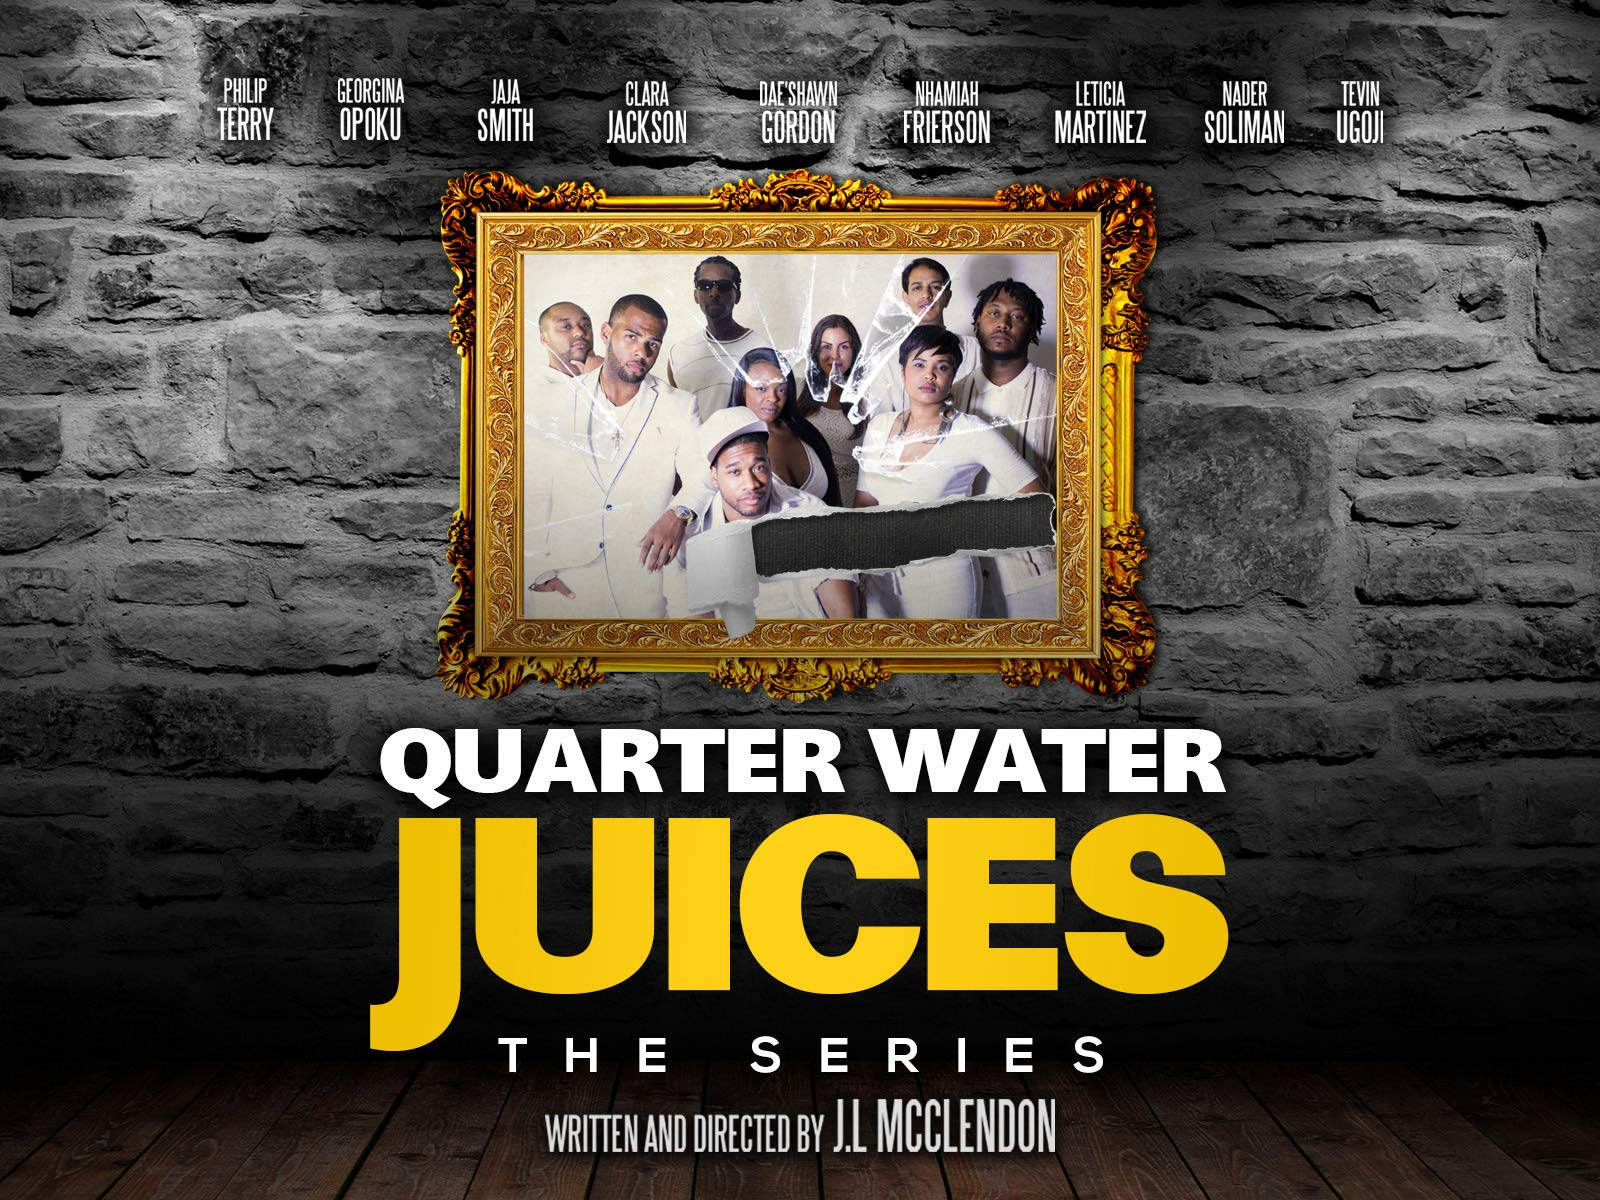 Quarter Water Juices